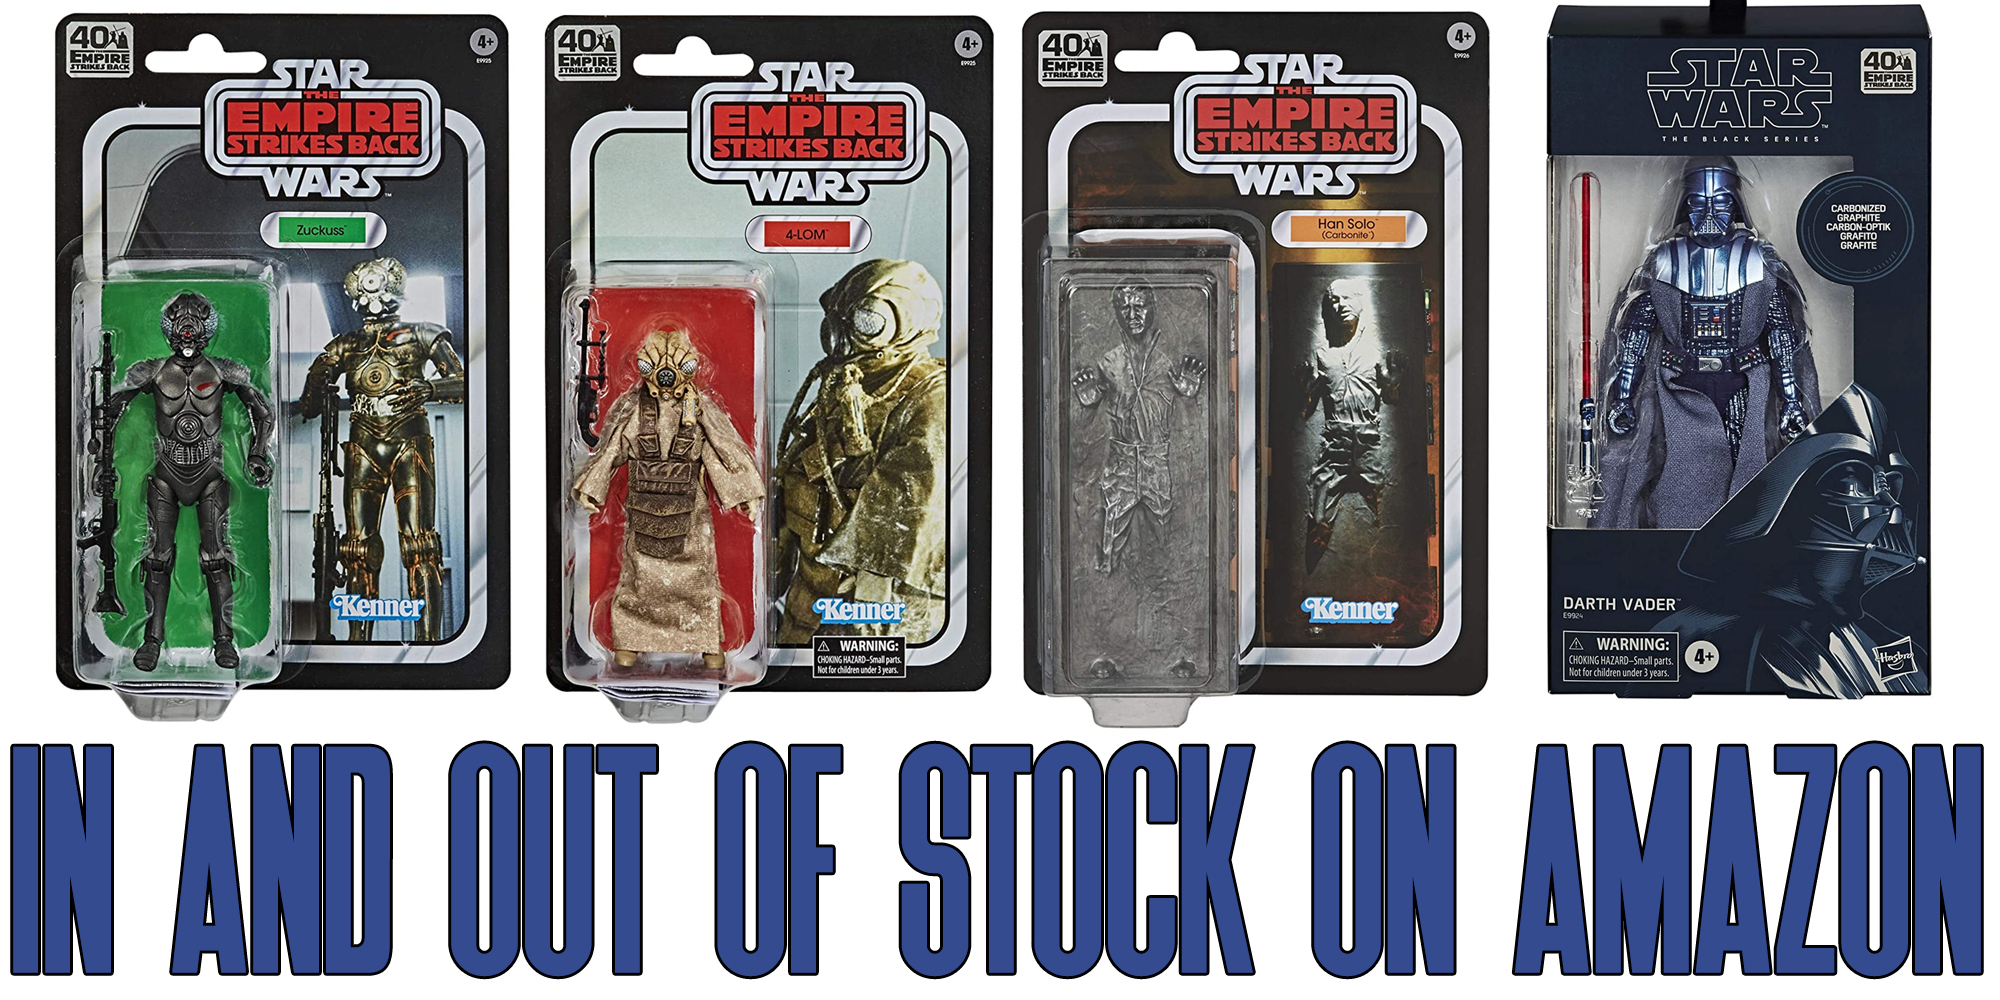 Star Wars Black Series at Amazon